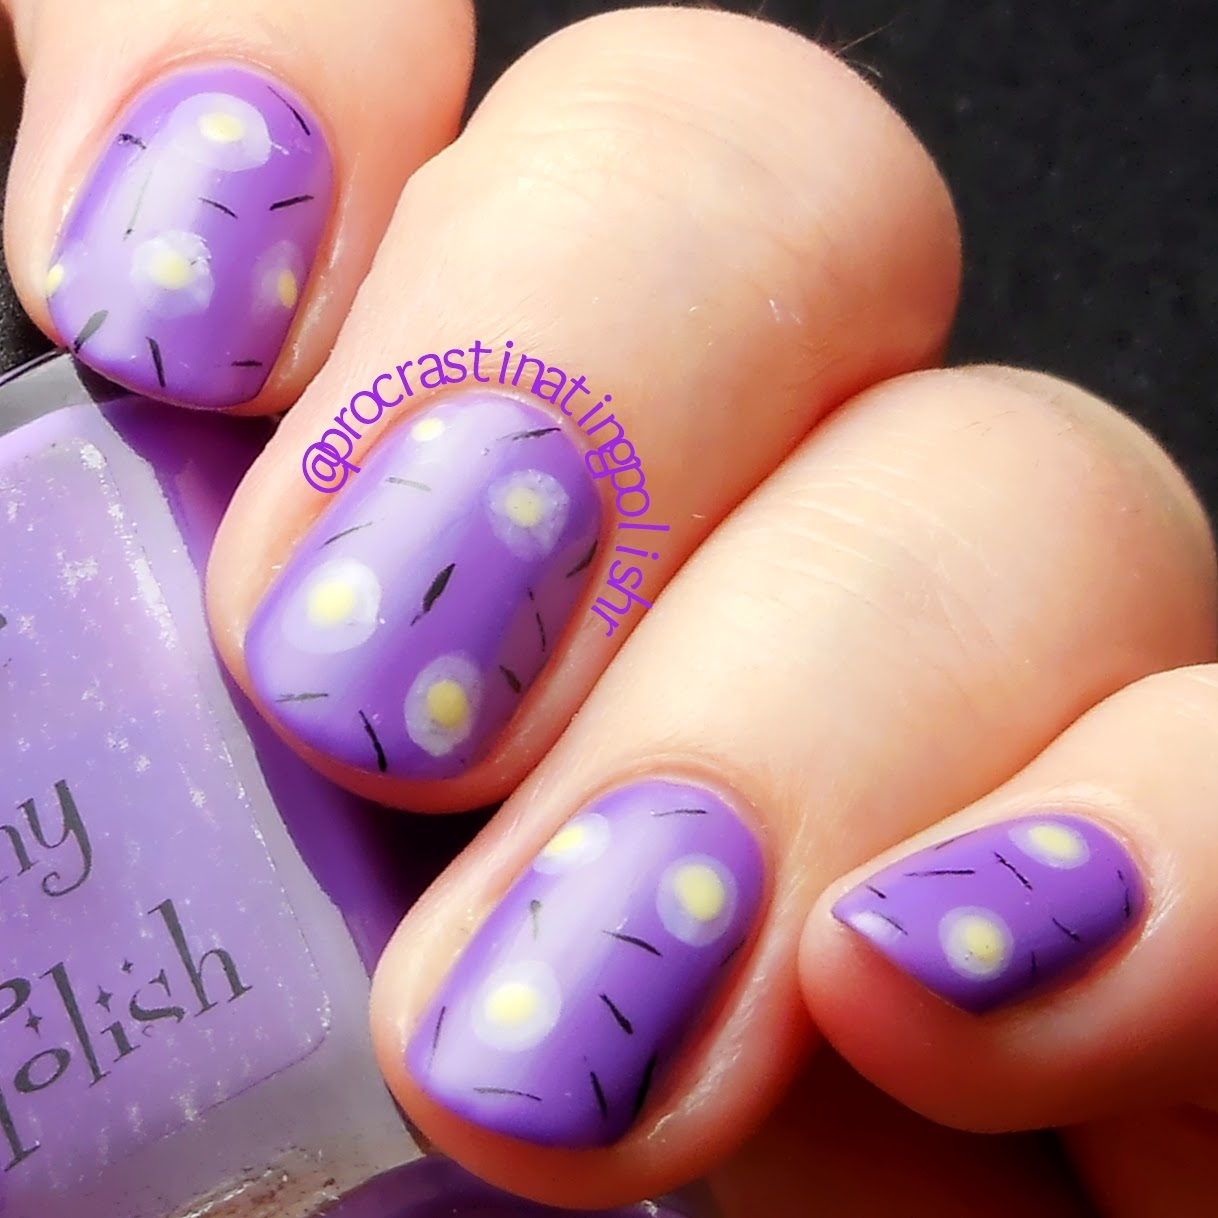 Deconstructed Violets nail art 31DC2014